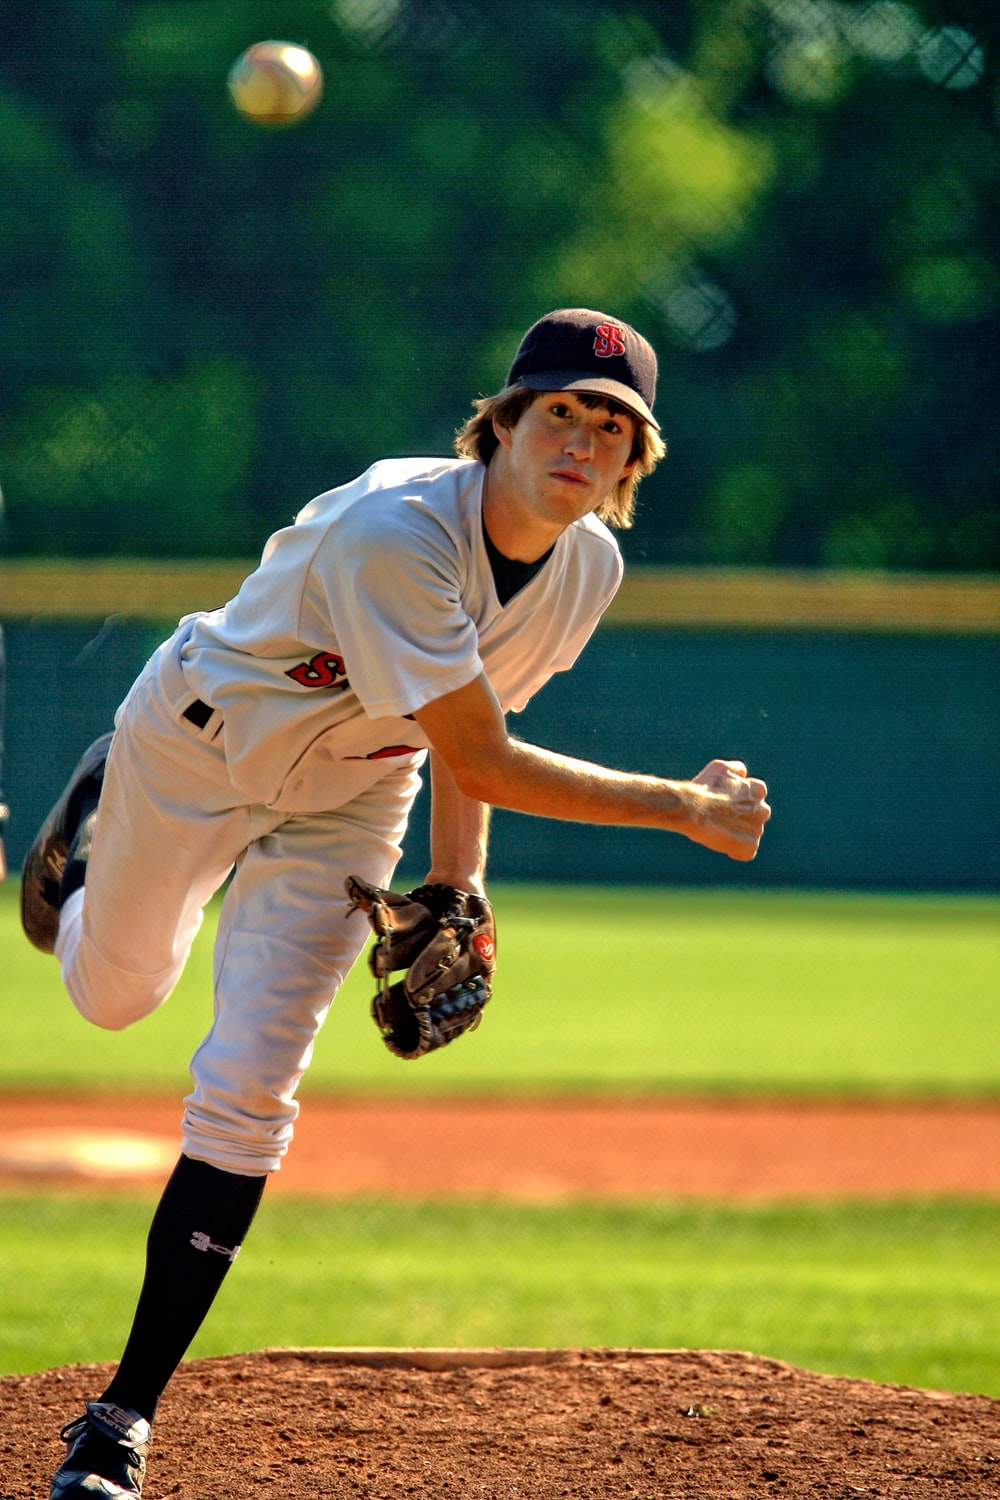 baseball pitcher throwing some fast ball pitch